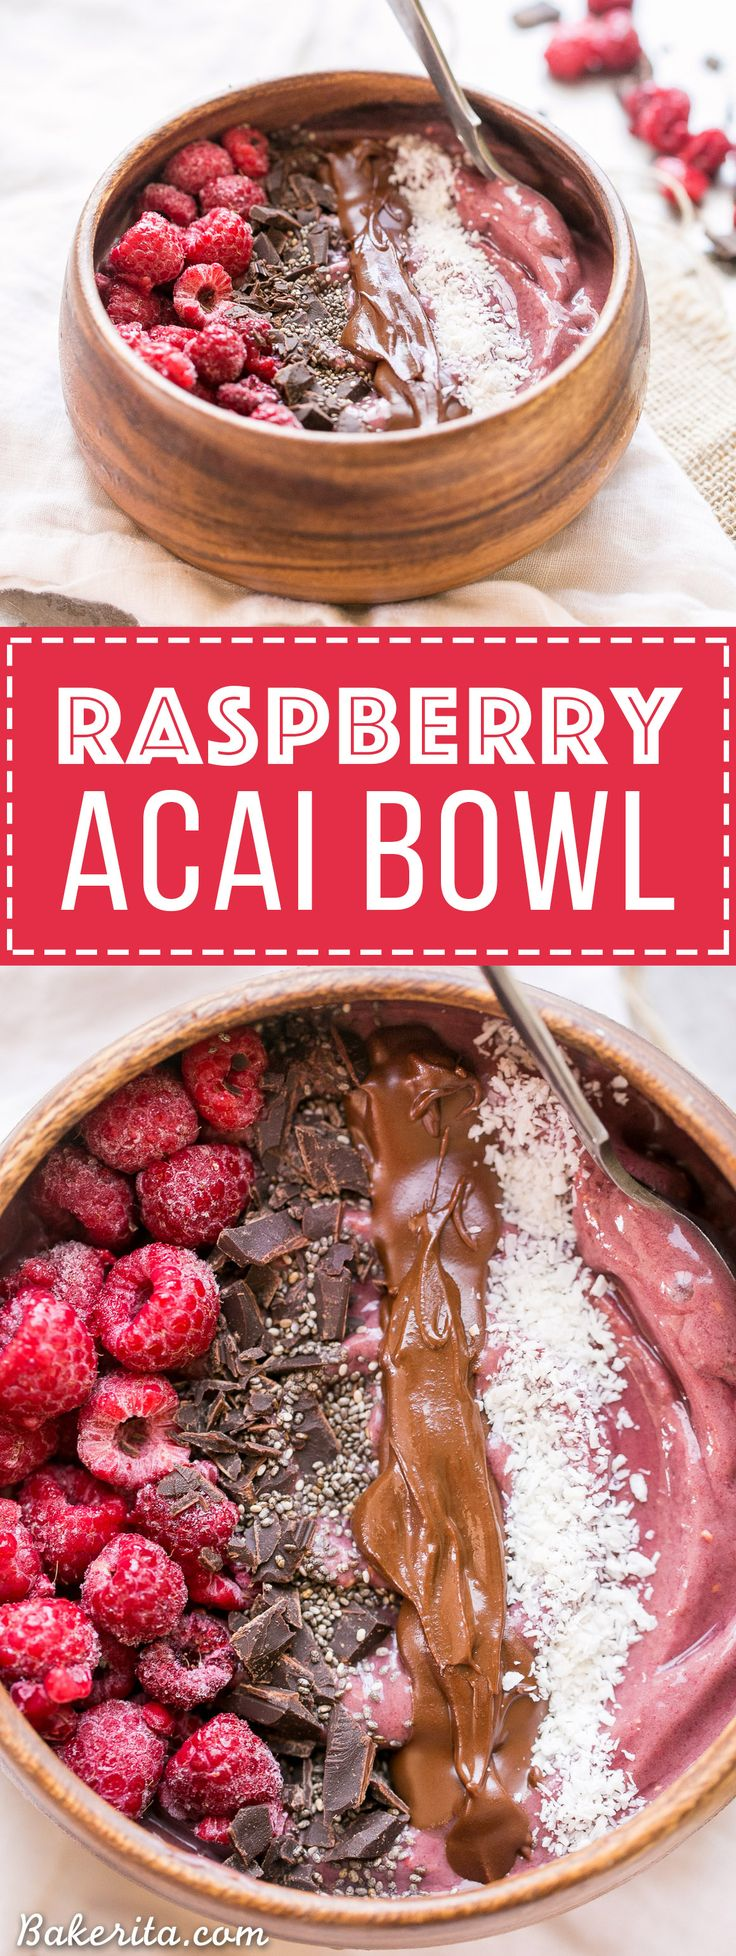 This Raspberry Acai Bowl is a refreshing & delicious breakfast, especially when you add your favorite toppings! This healthy breakfast is ready in a few minutes.